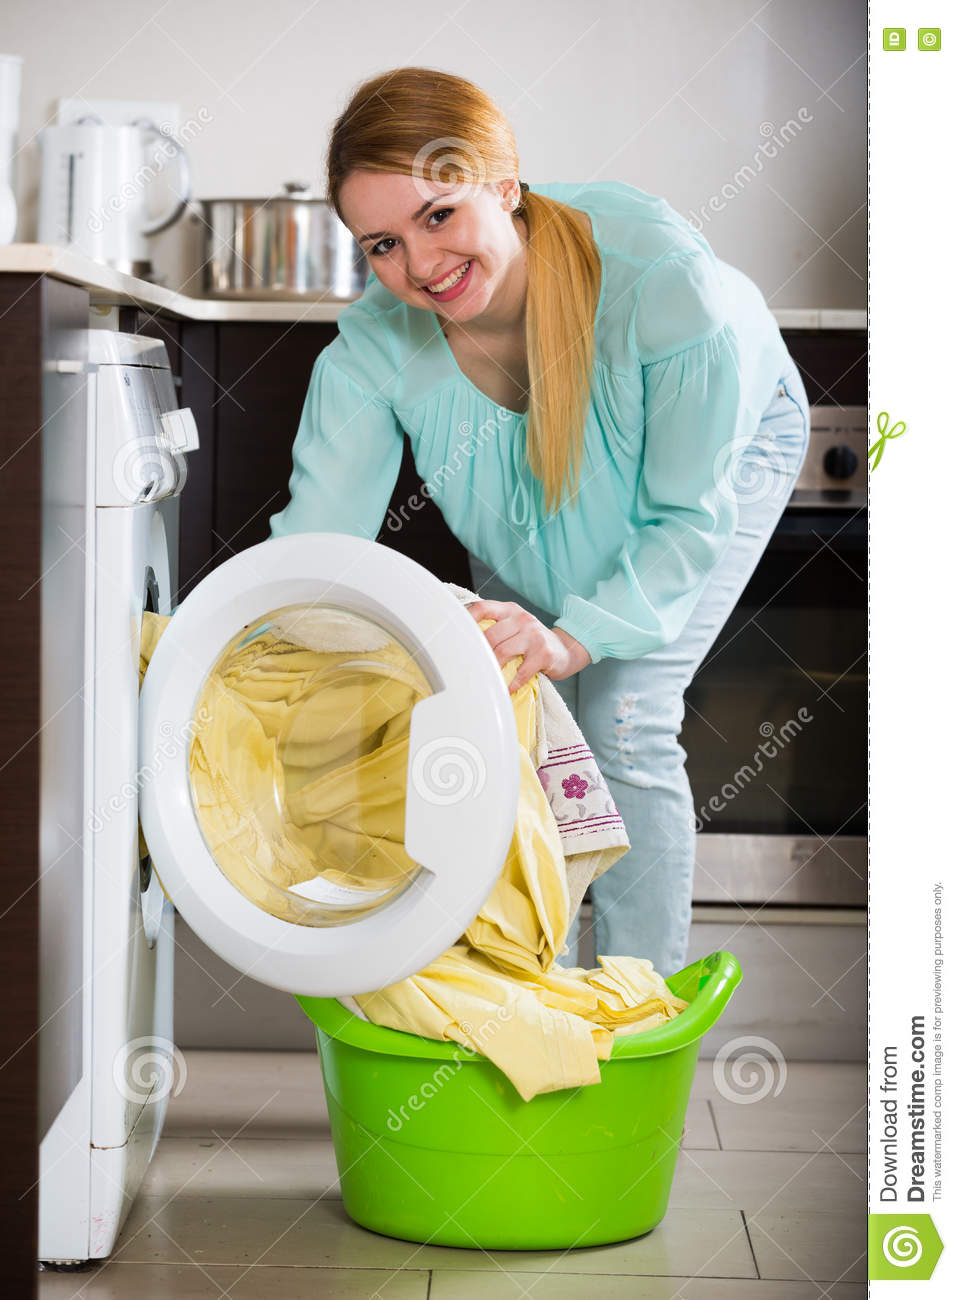 Happy Young Woman Doing Laundry In Kitchen And Smiling Stock Photo ...